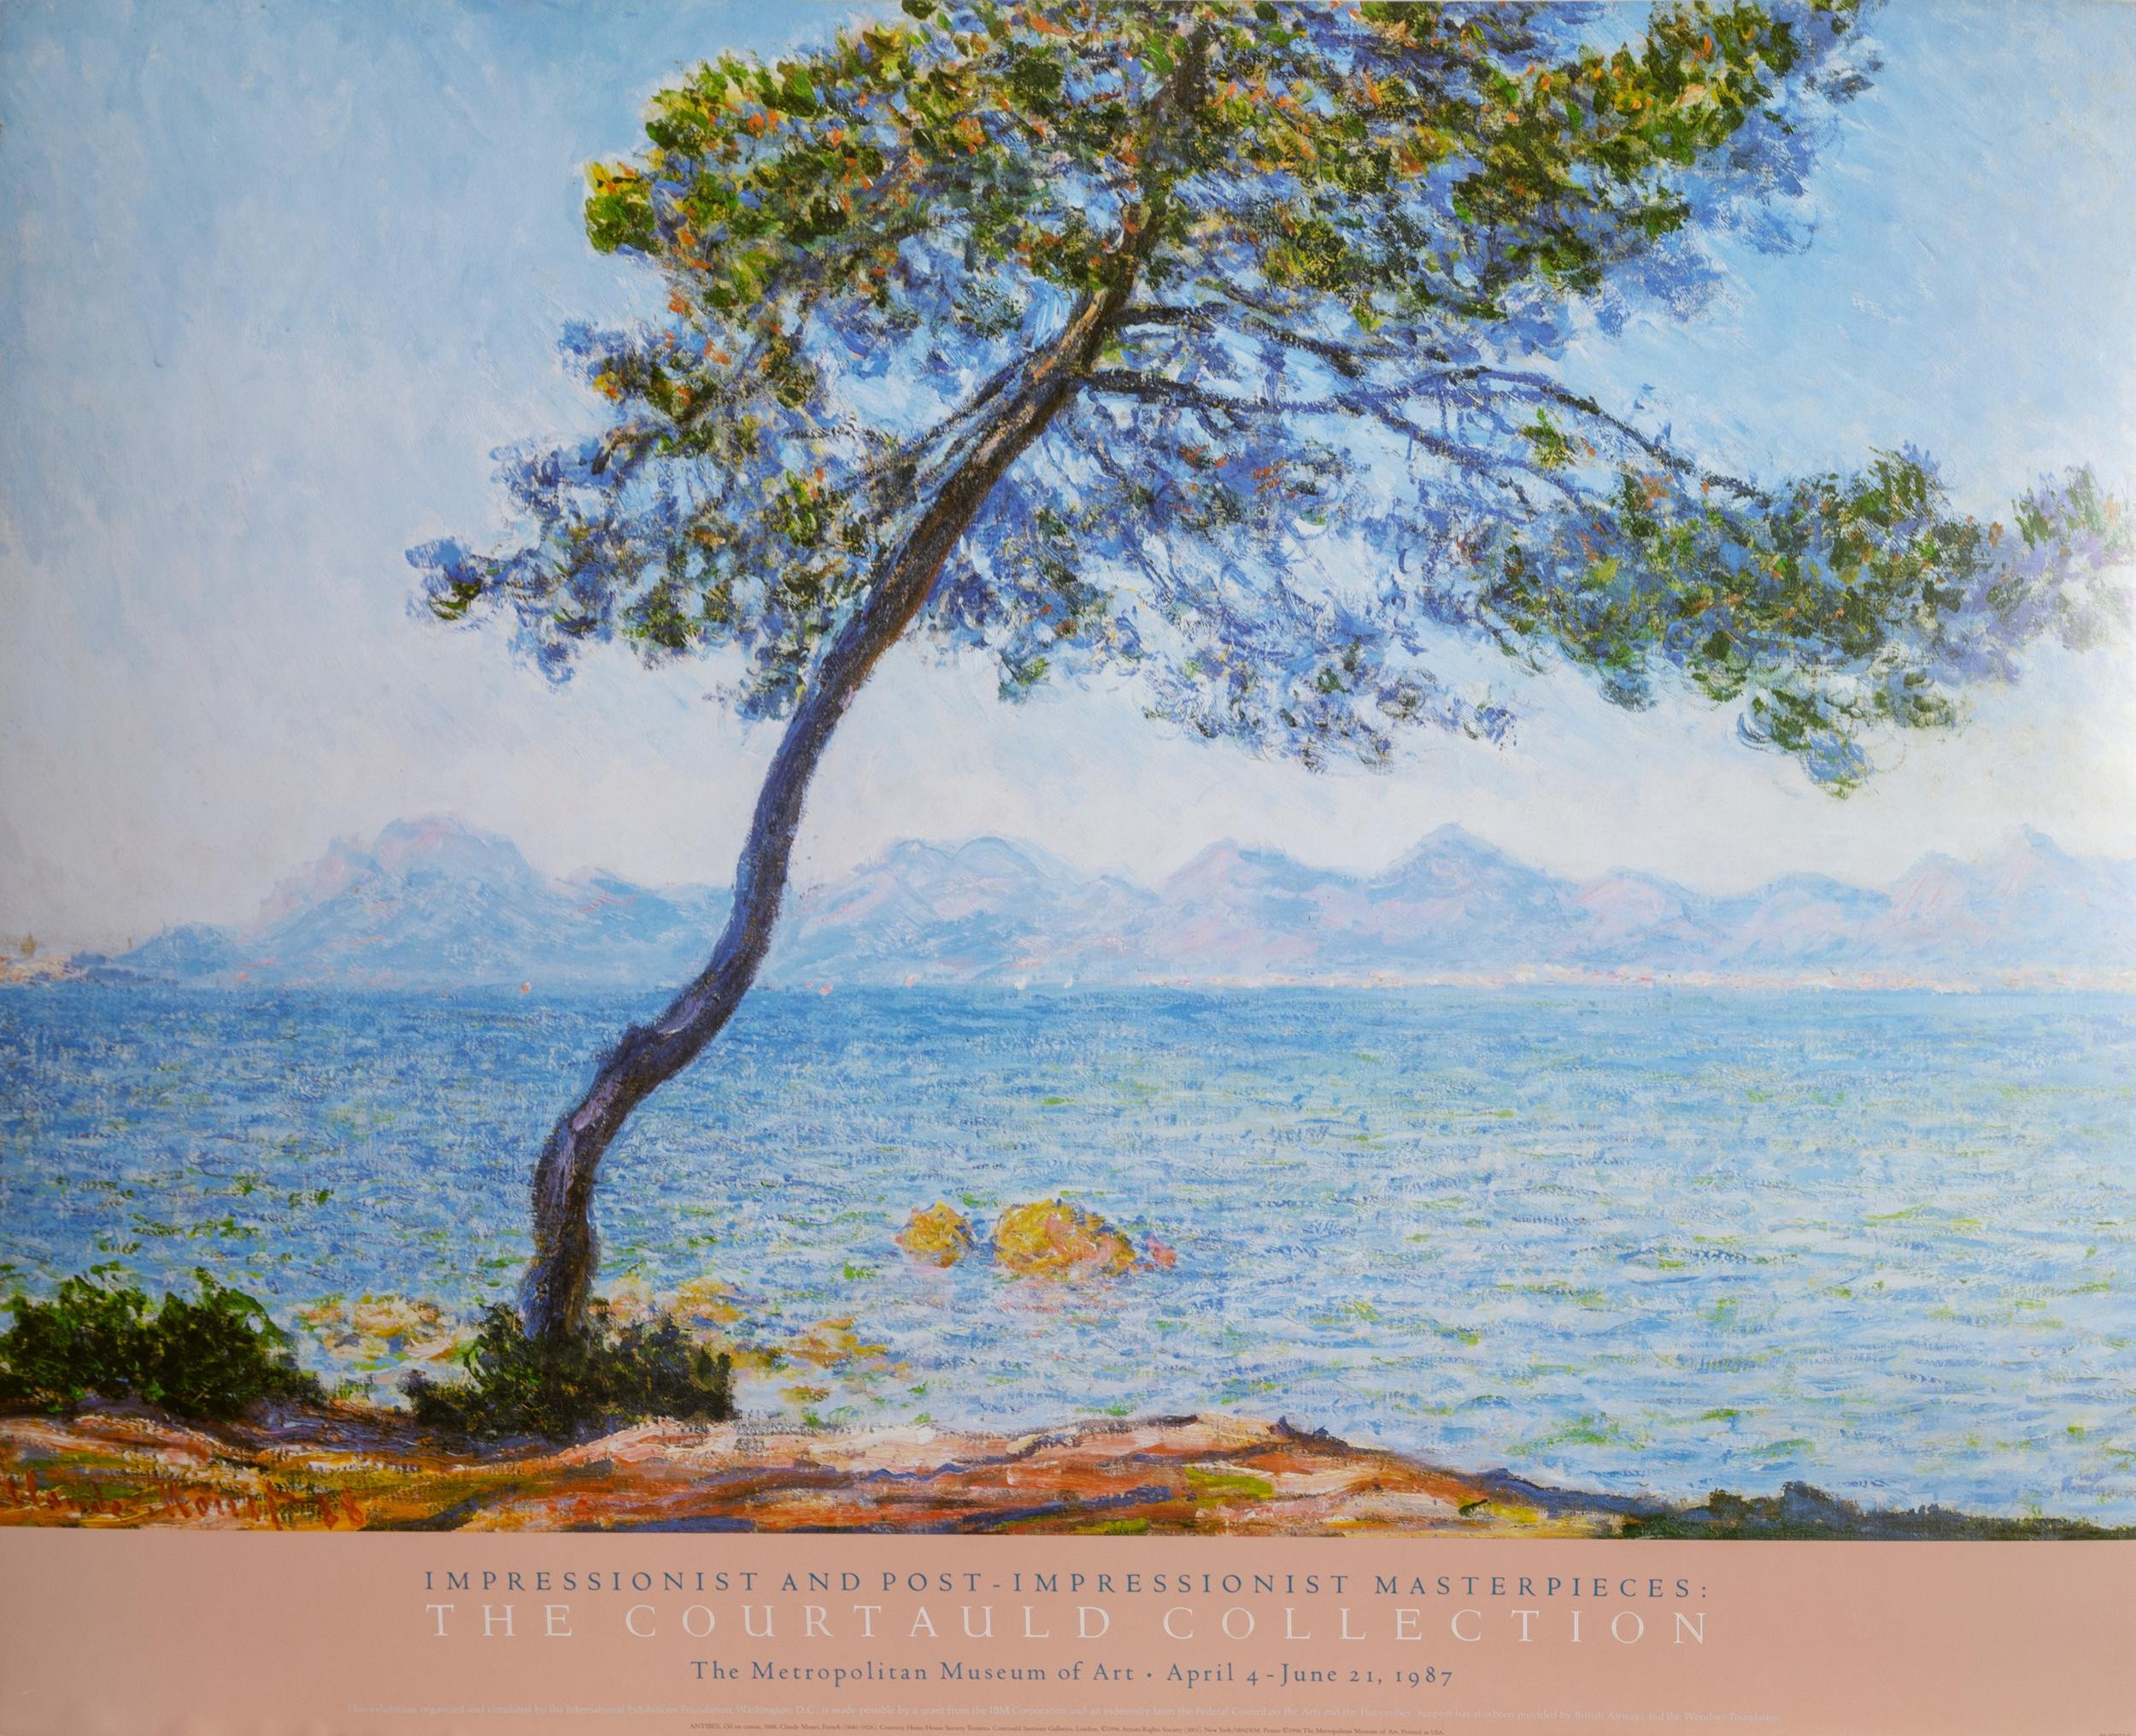 Claude Monet, The Courtald Collection - Antibes, Poster on foamcore